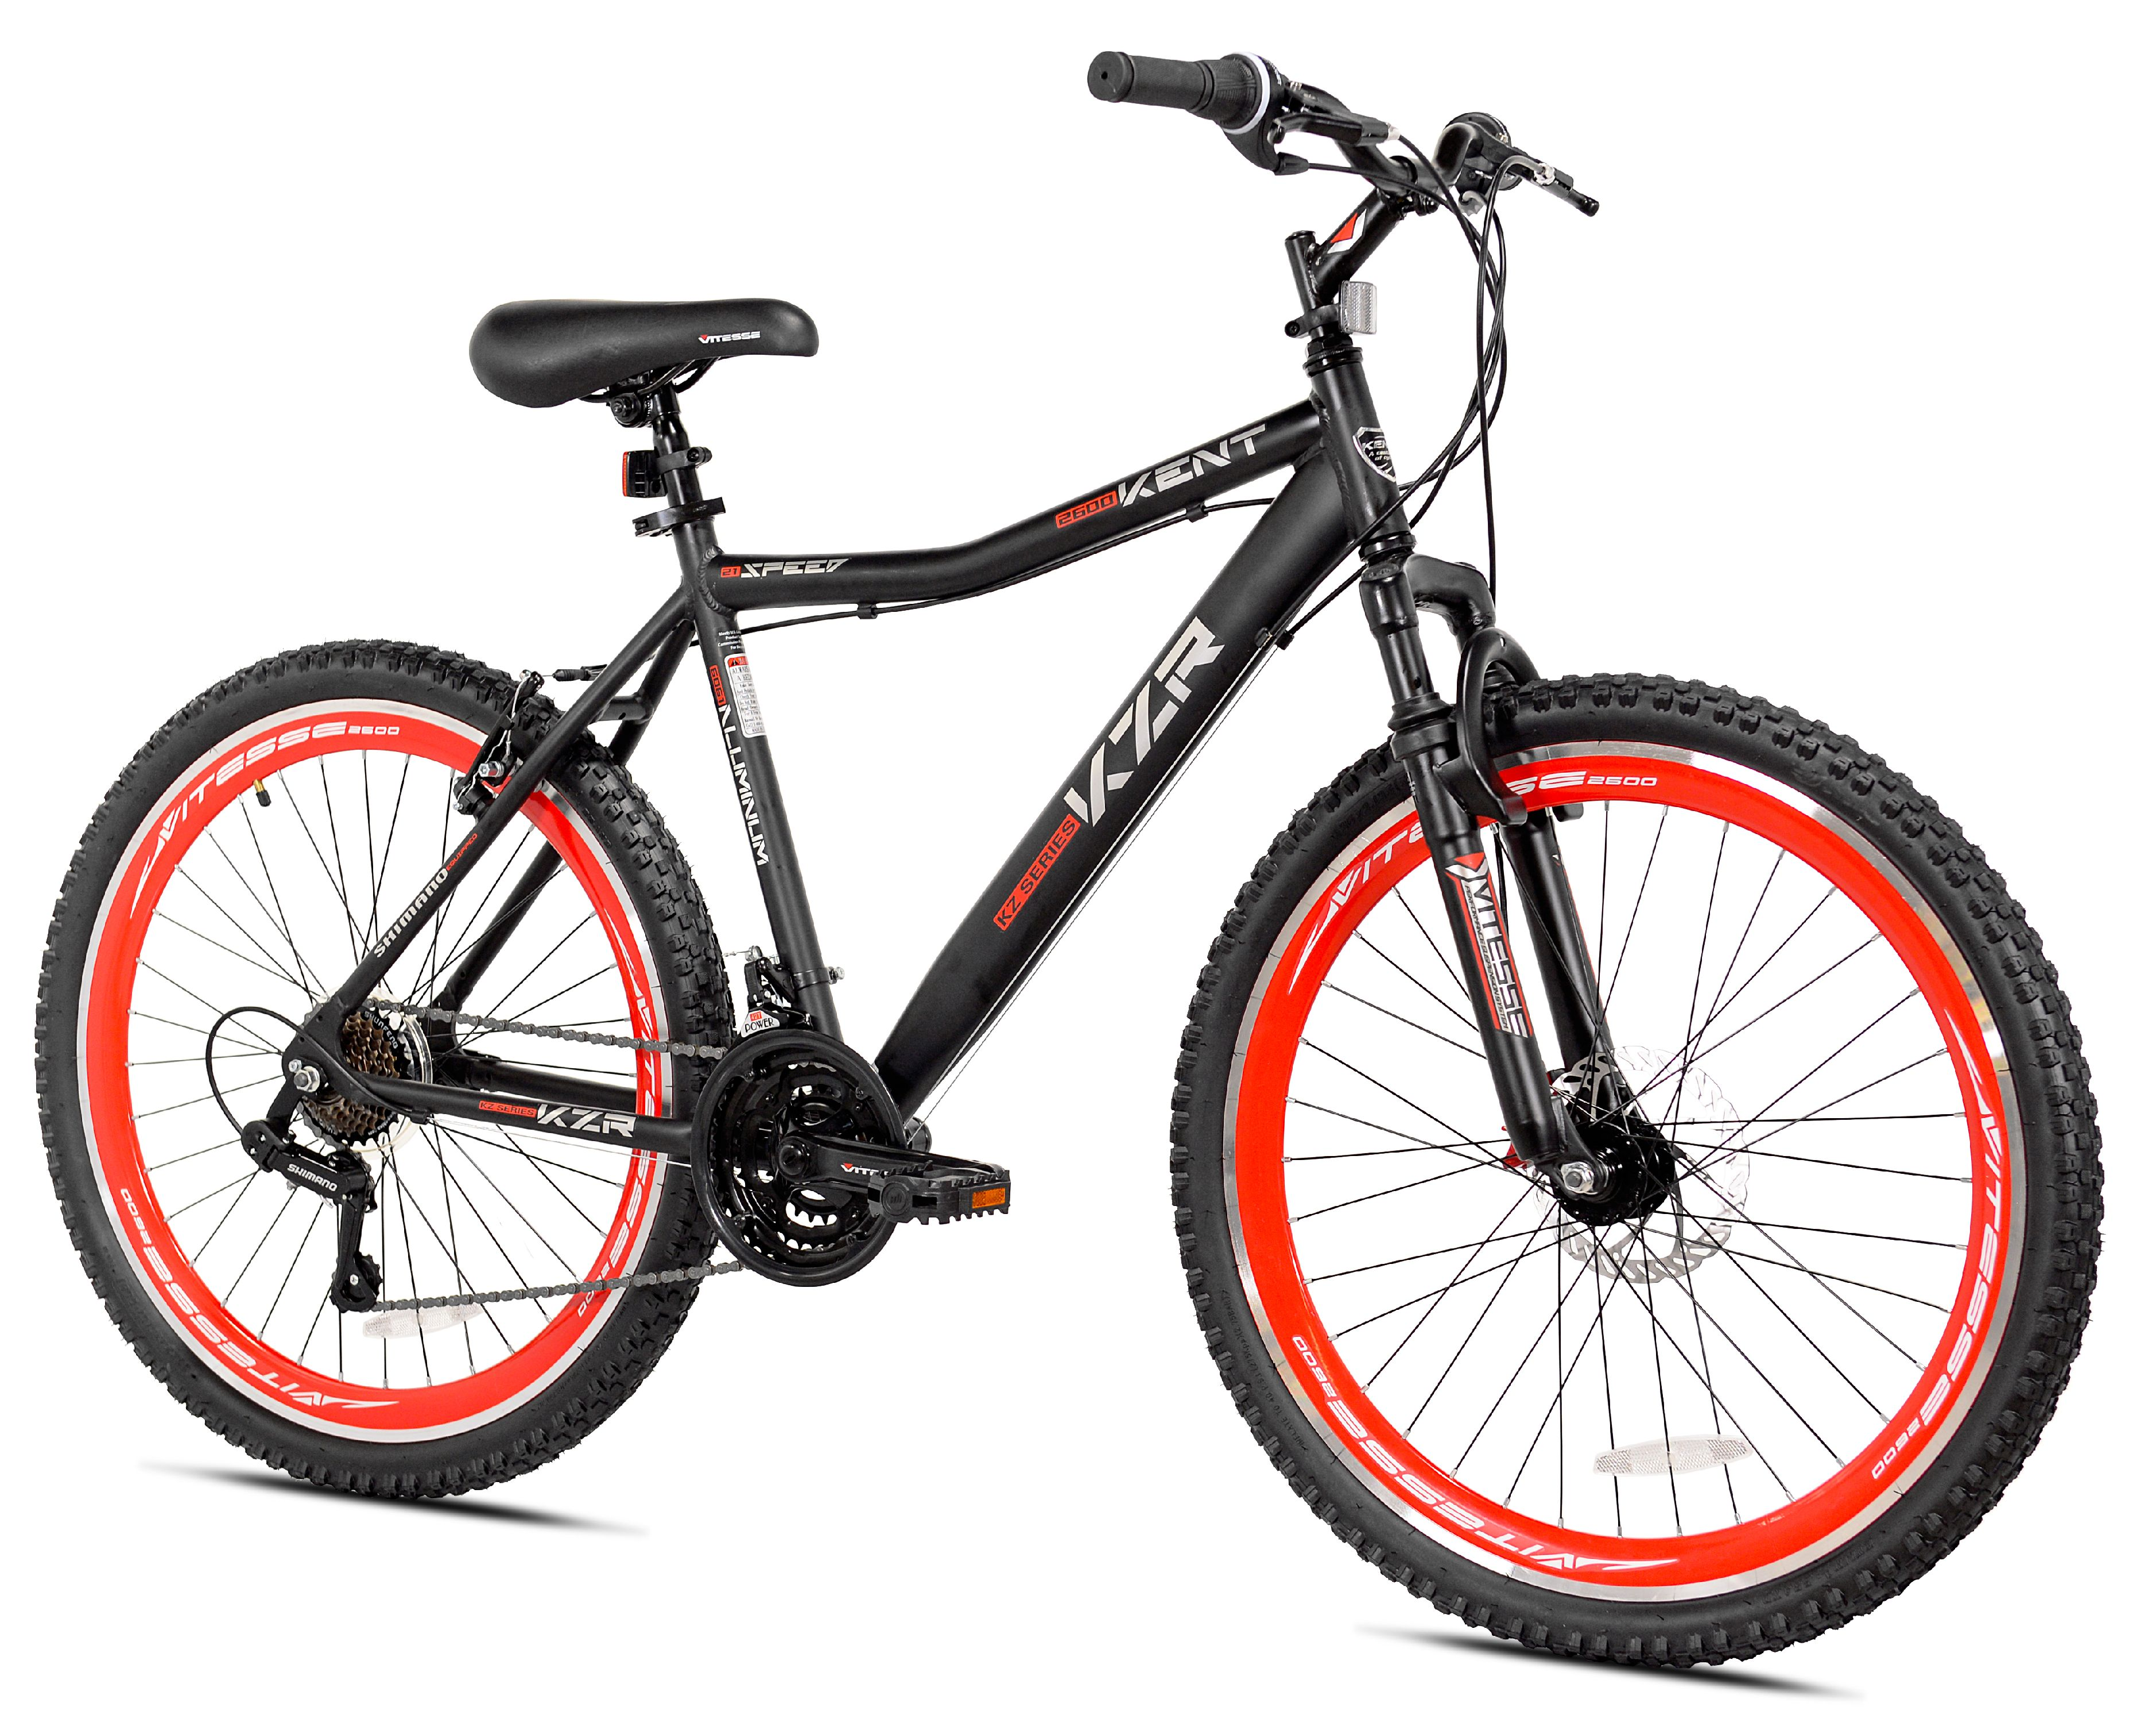 "Kent 26"" KZR Mountain Men's Bike, Black/Red, For Height Sizes 5'2"" and Up"